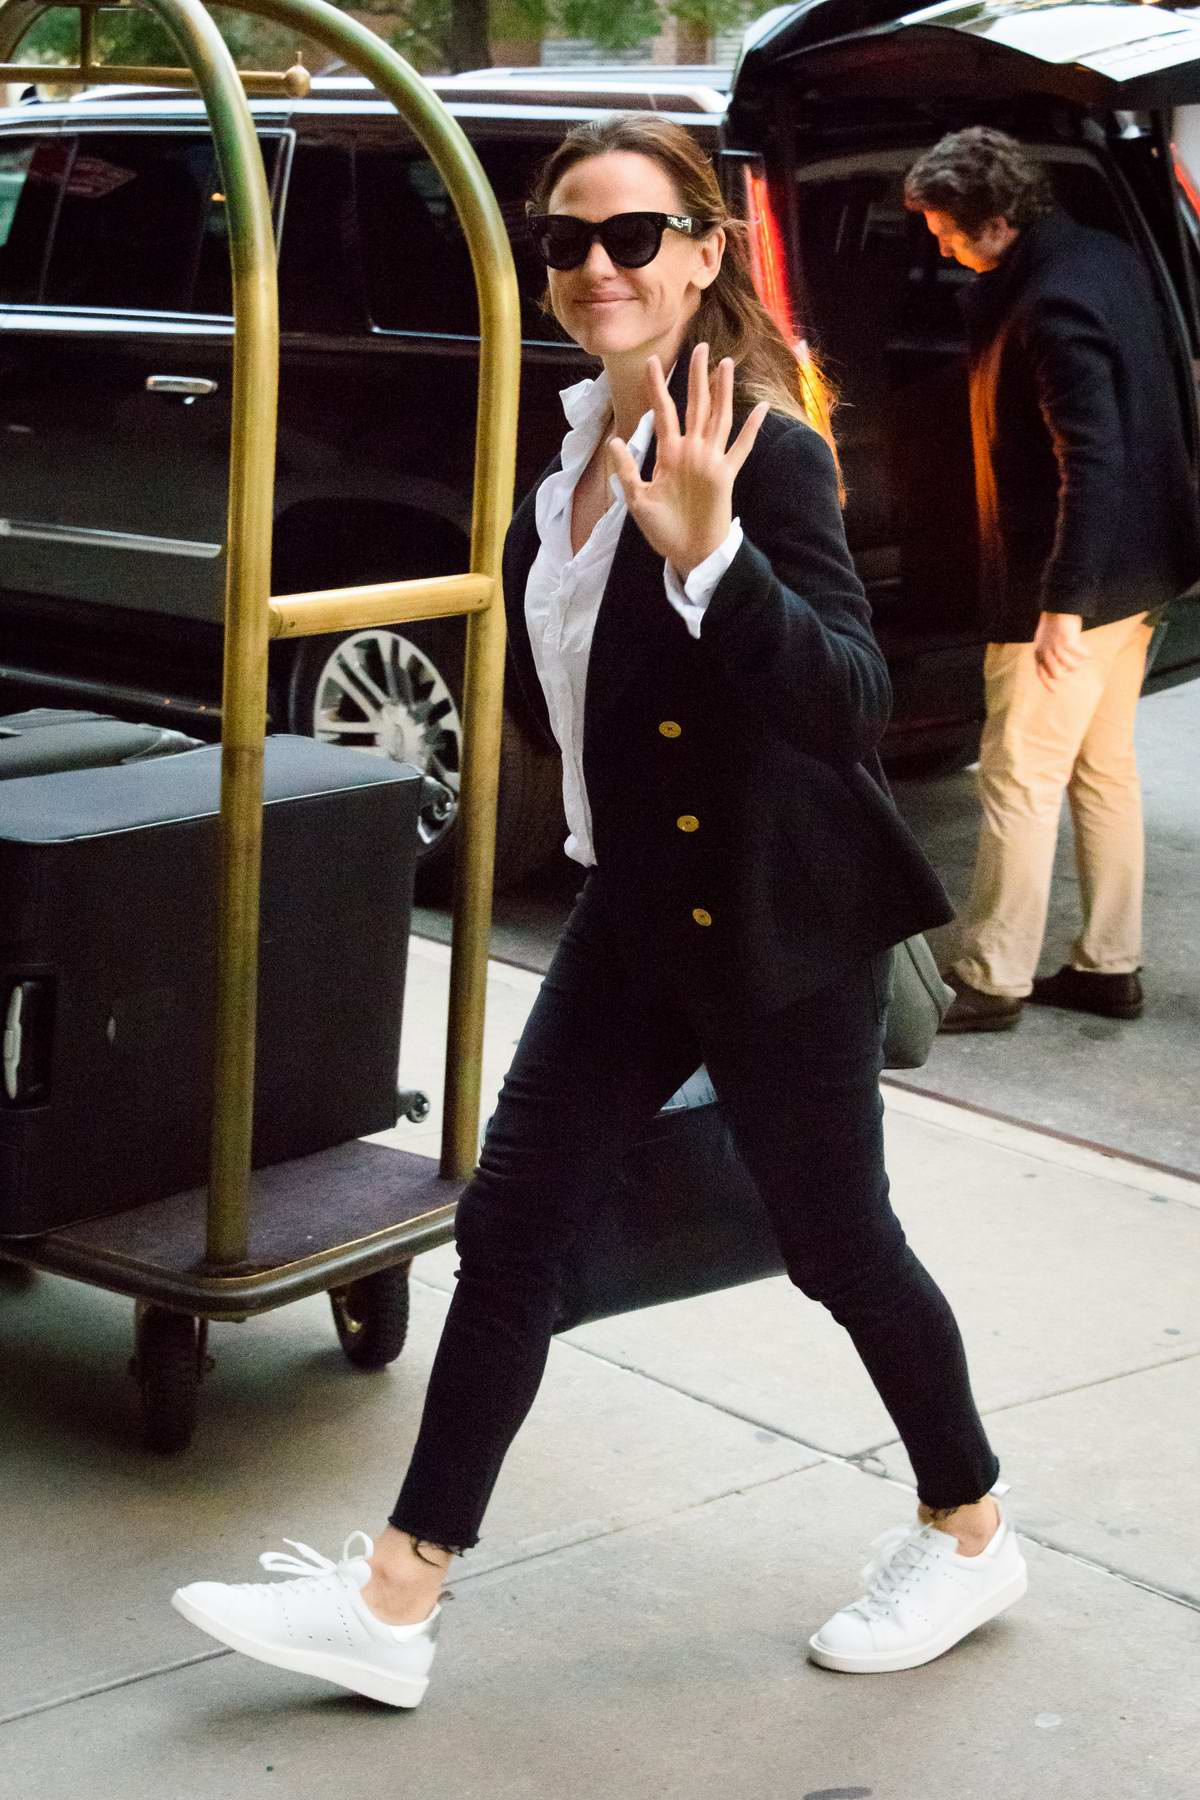 Jennifer Garner smiles and waves for the camera as she arrives at her hotel in New York City